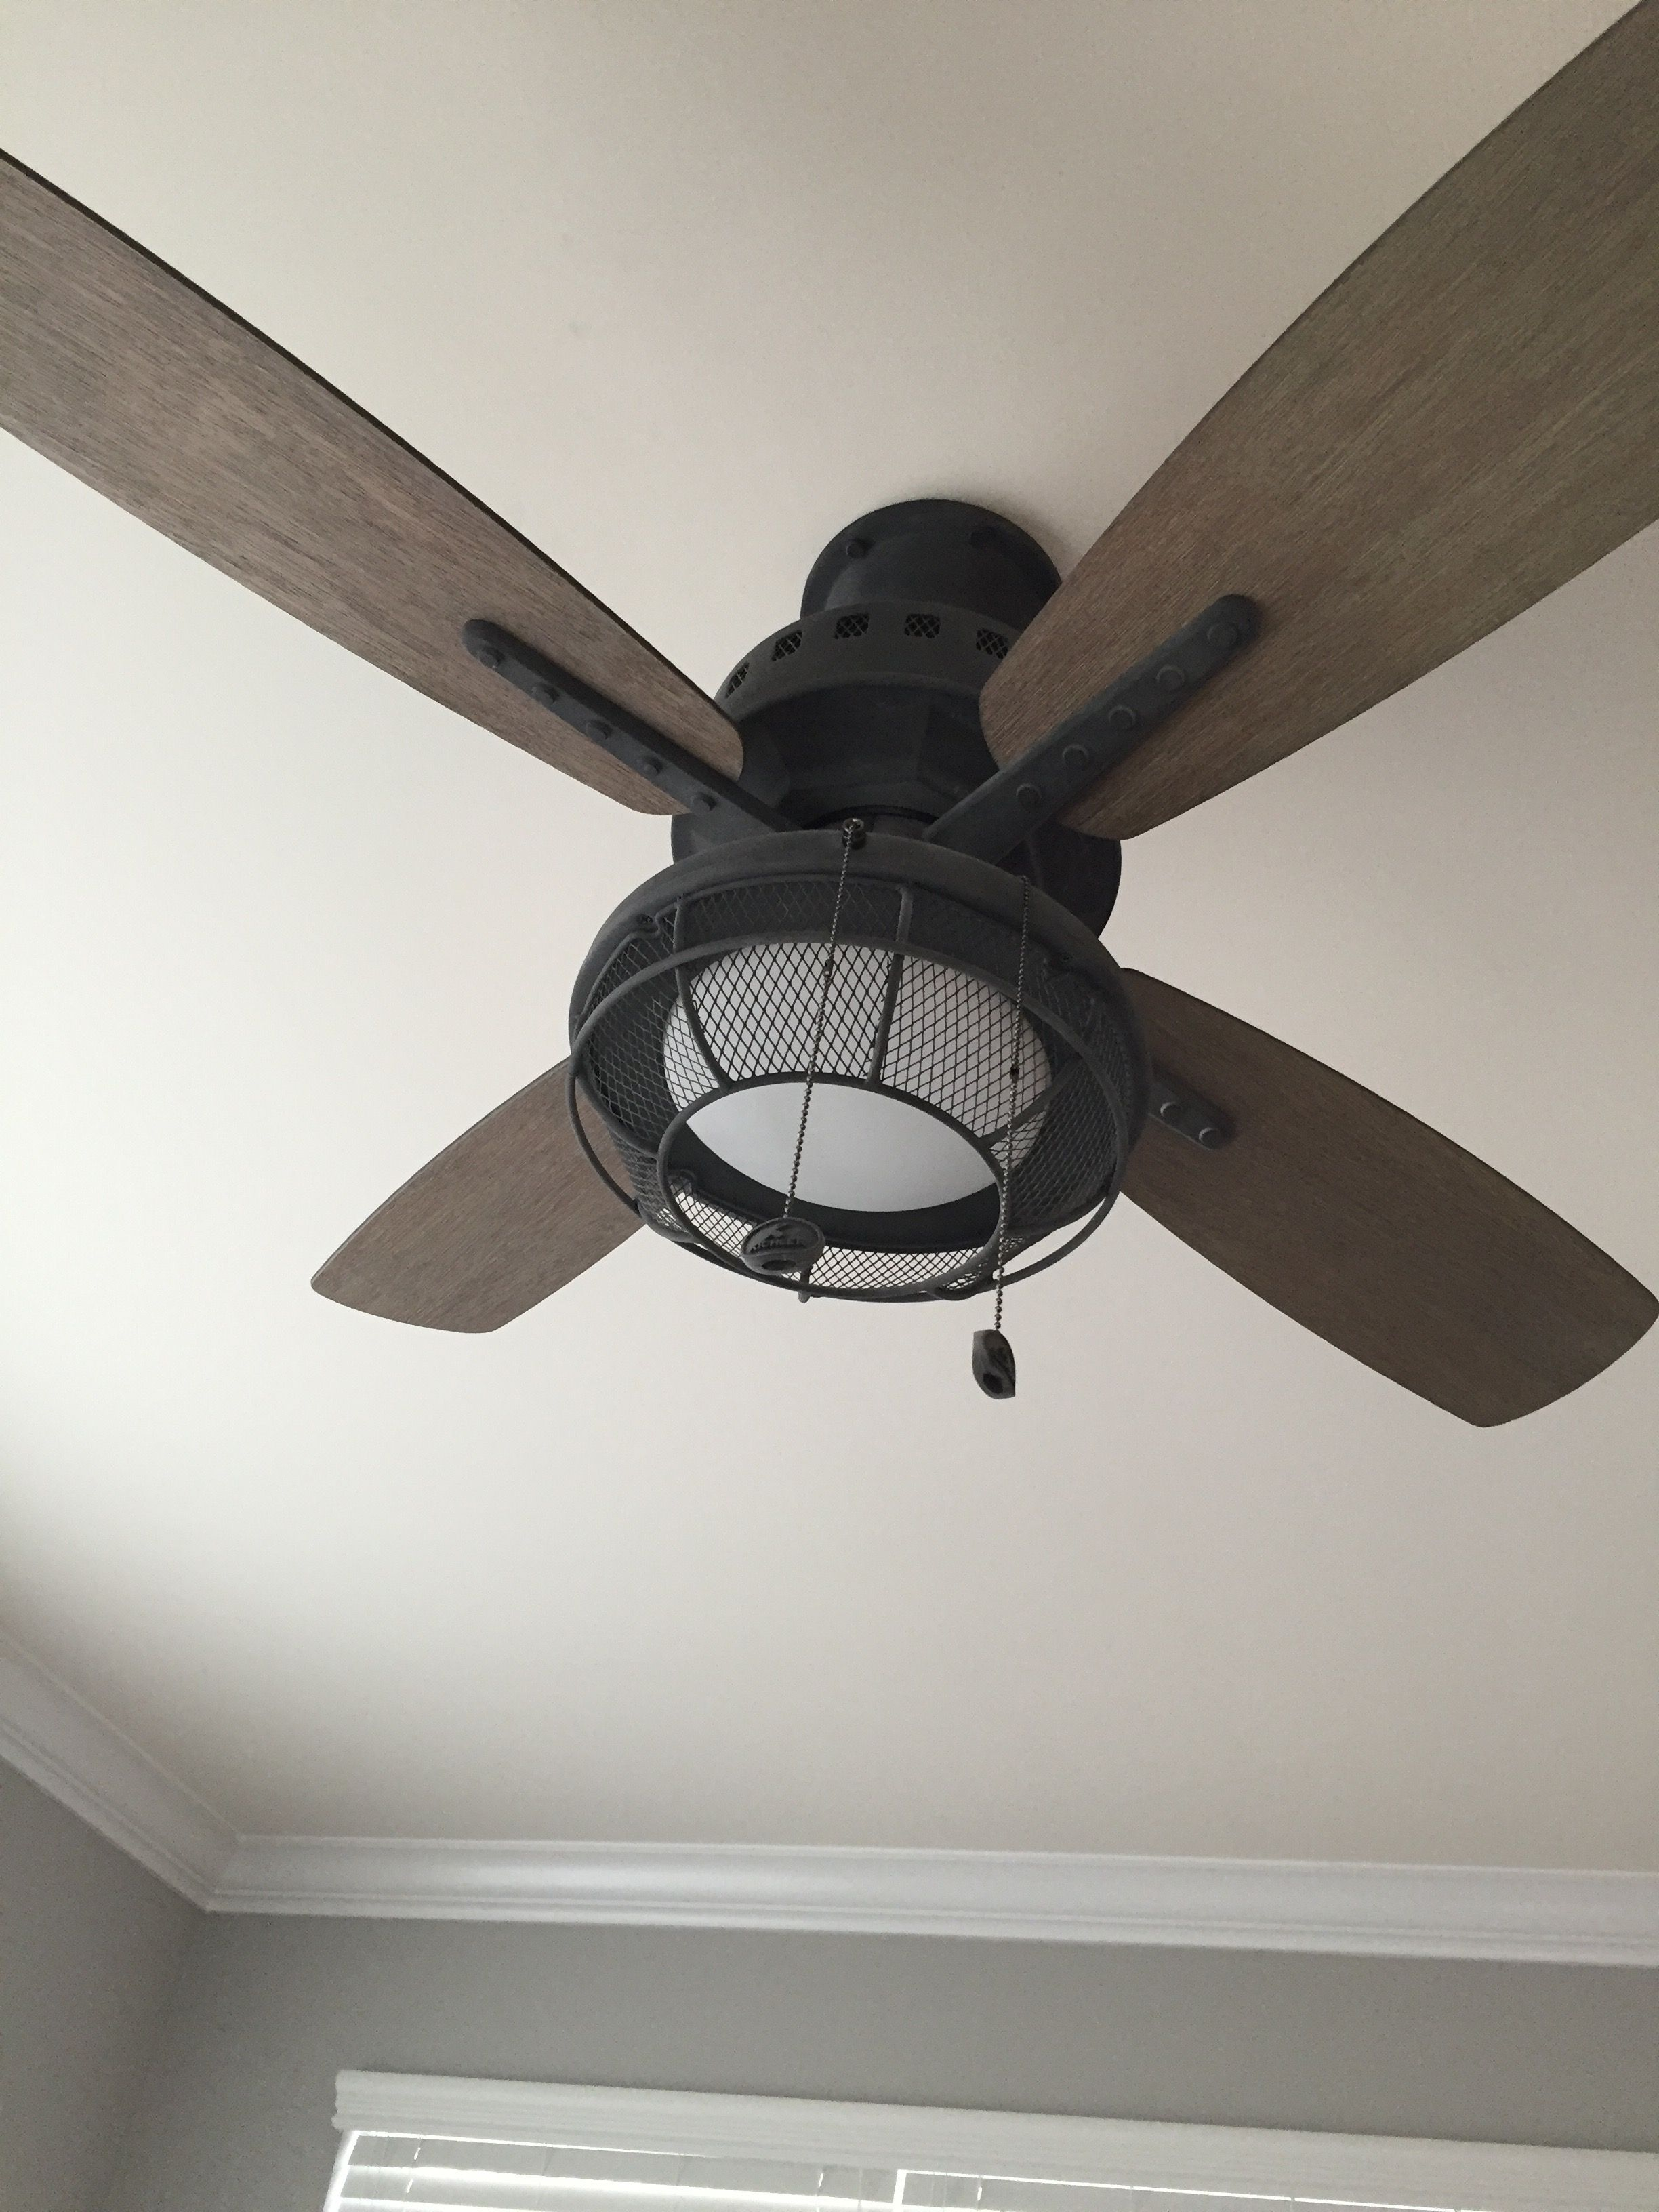 Farmhouse industrial ceiling fans danegooddecor - Pictures of ceiling fans ...